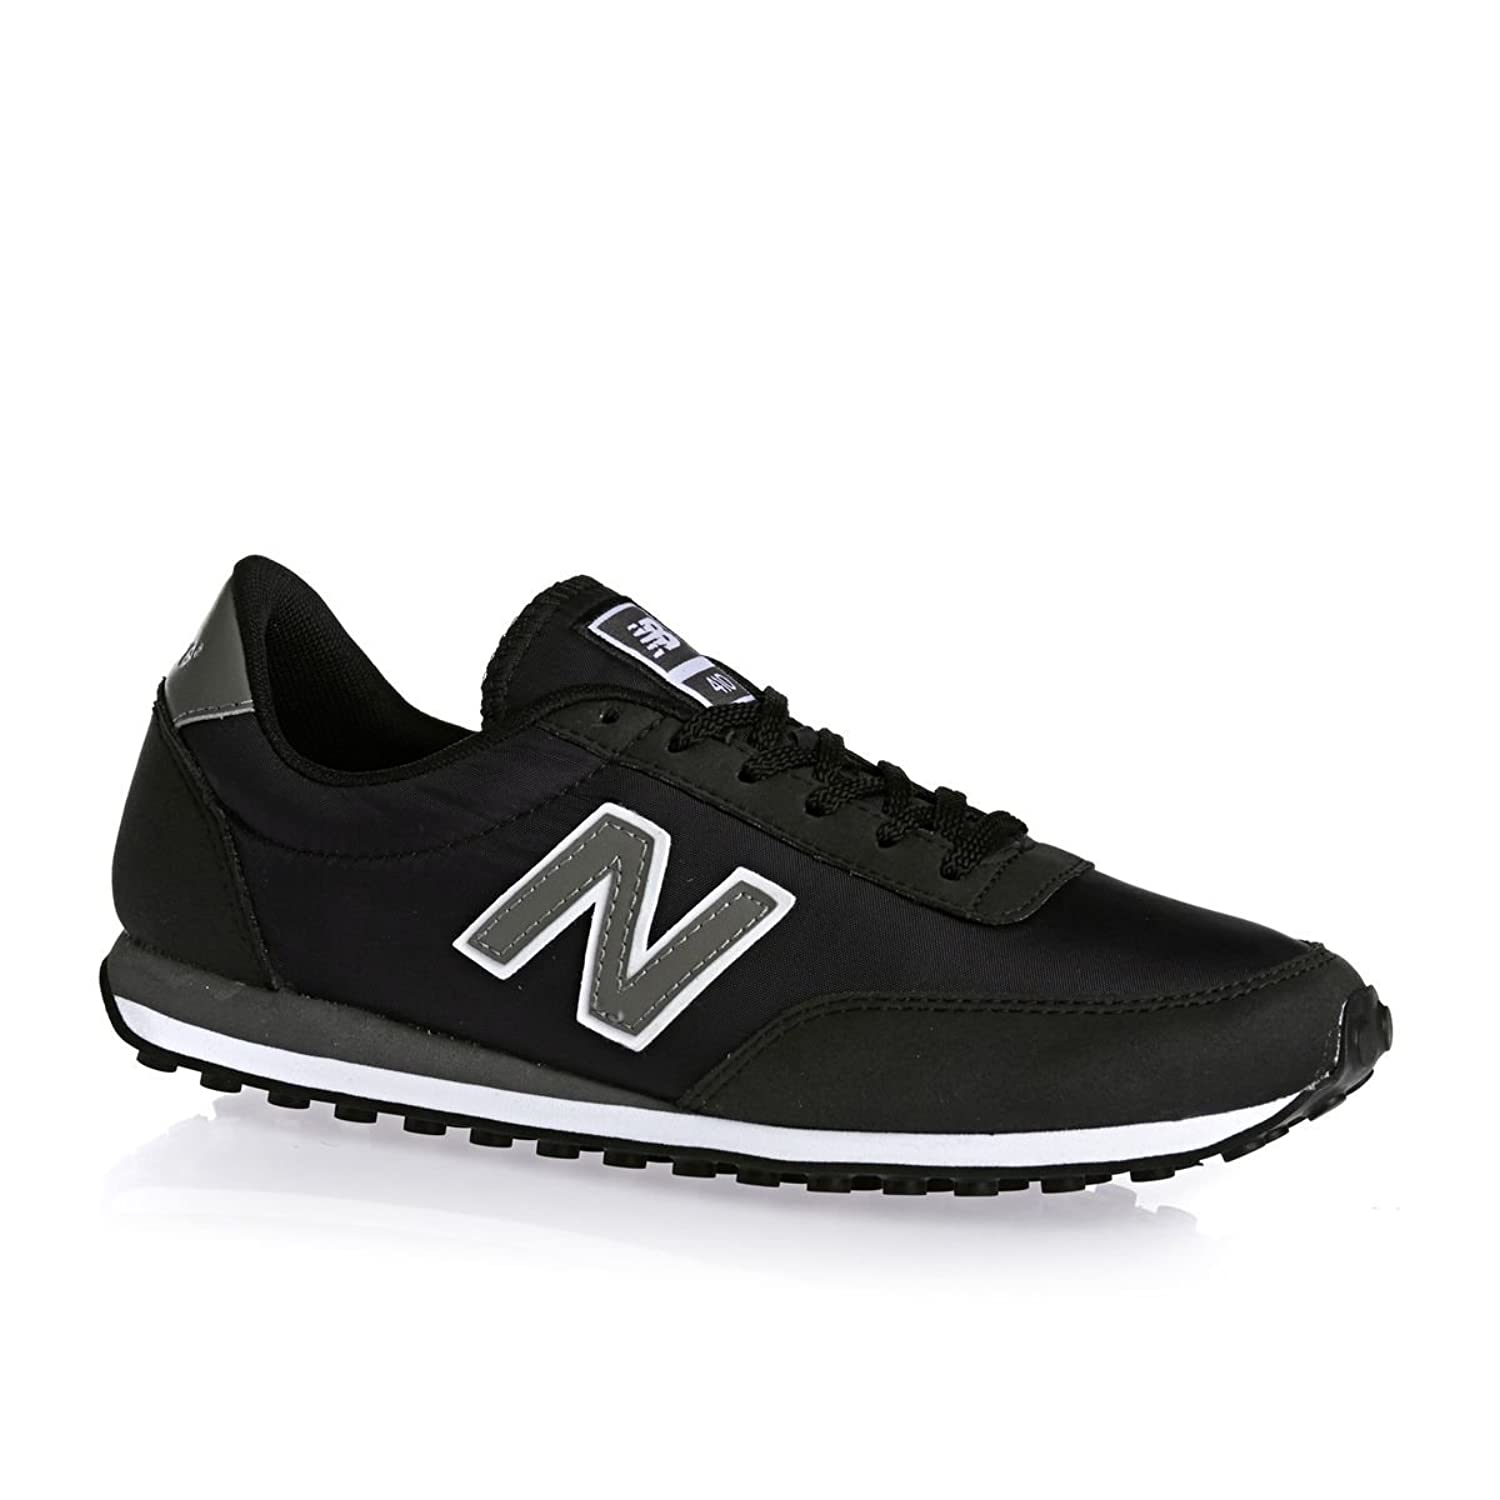 new balance 410. new balance unisex adults\u0027 u410cc-410 low-top sneakers 410